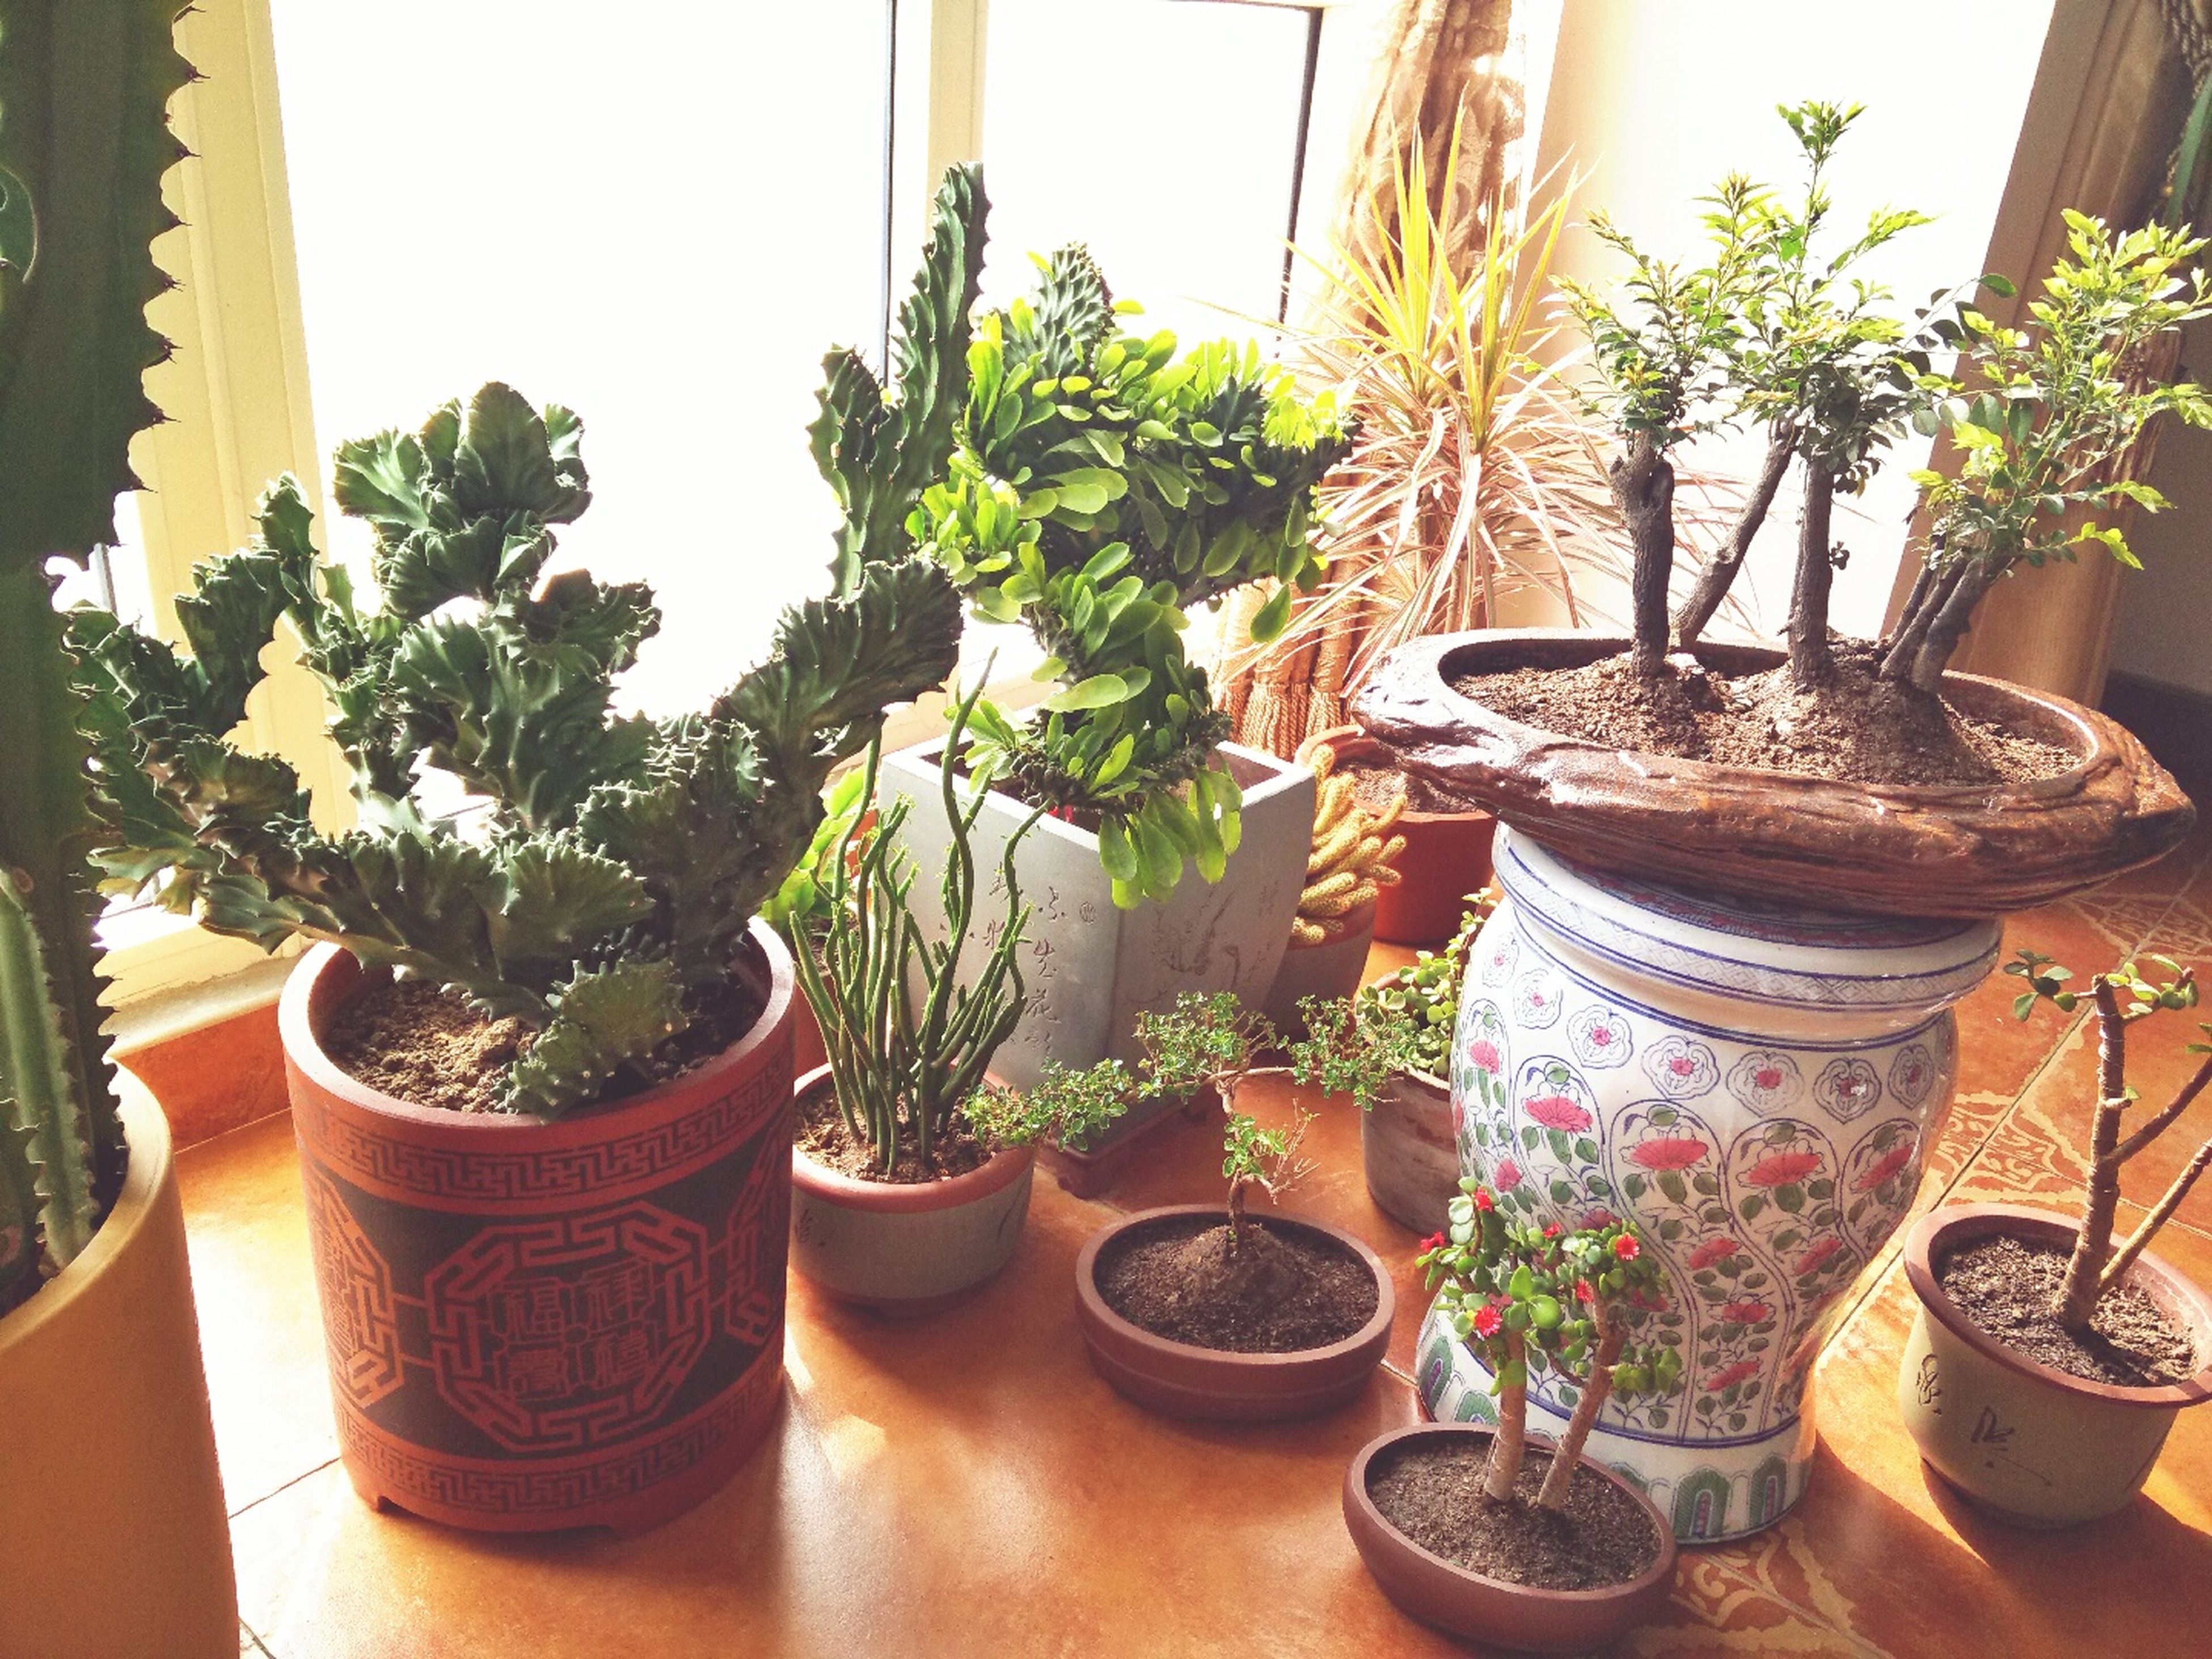 potted plant, plant, indoors, growth, flower, flower pot, vase, table, pot plant, window sill, window, home interior, freshness, leaf, glass - material, front or back yard, nature, decoration, day, green color